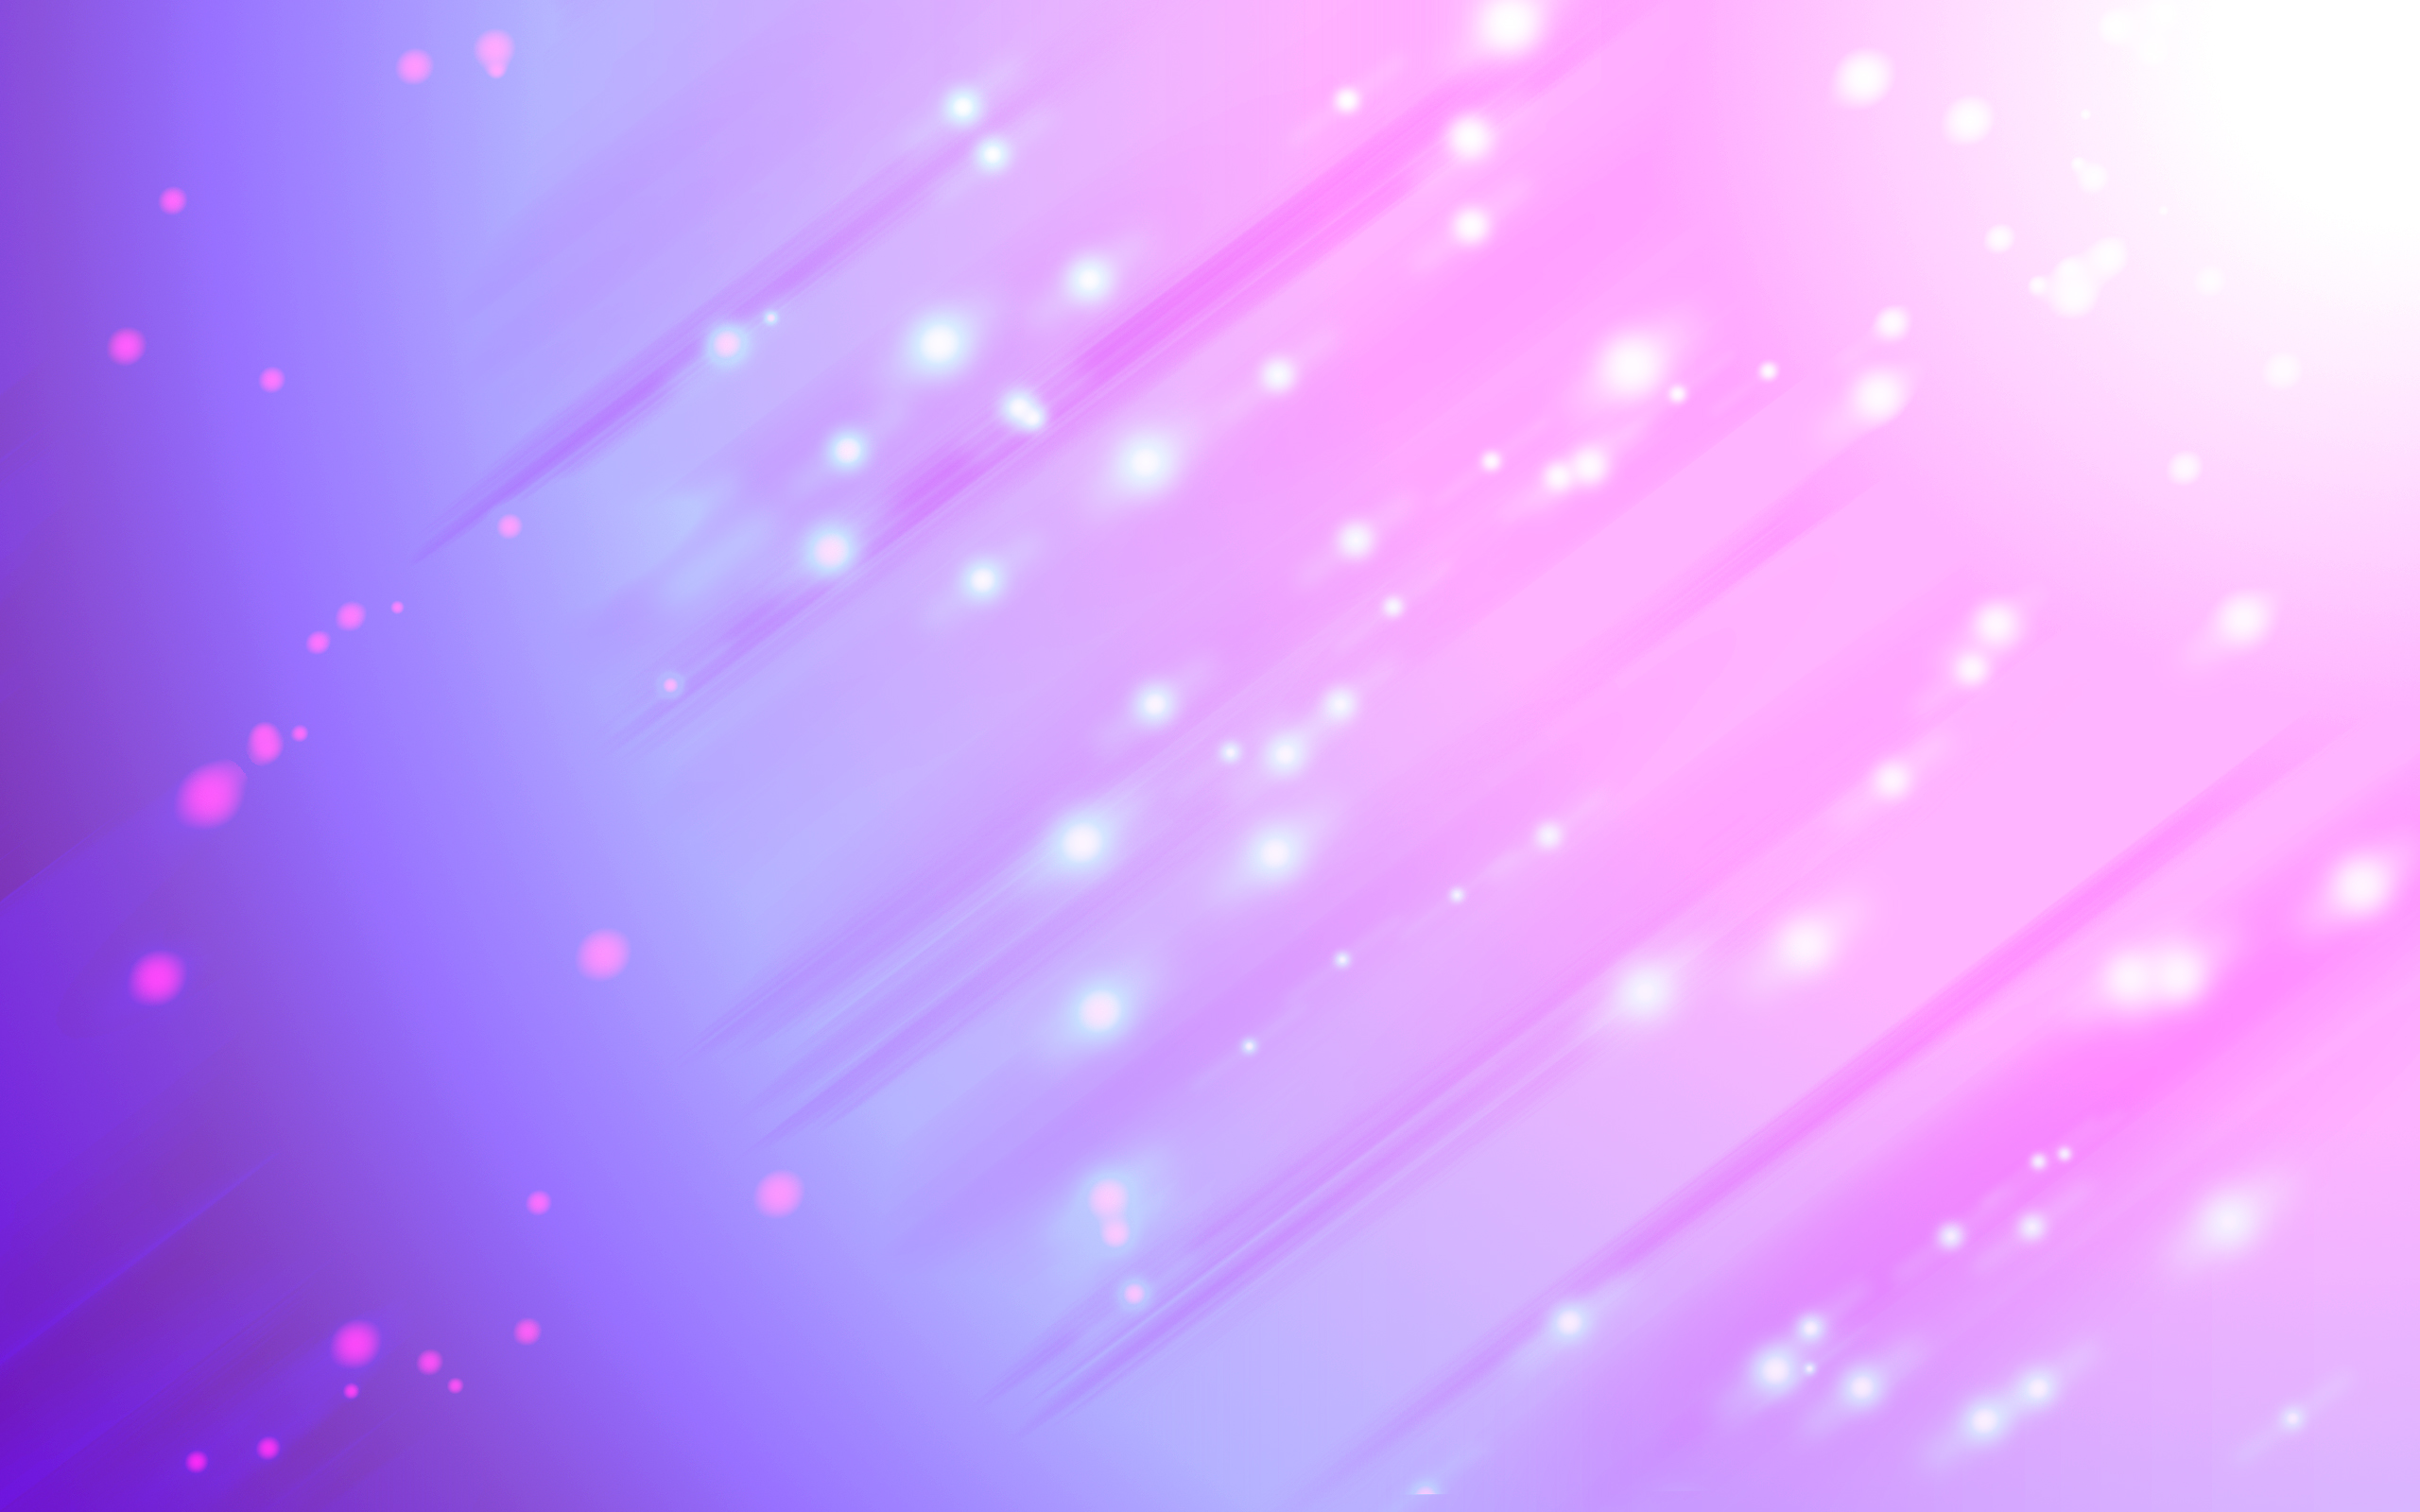 Free download pink backgrounds.